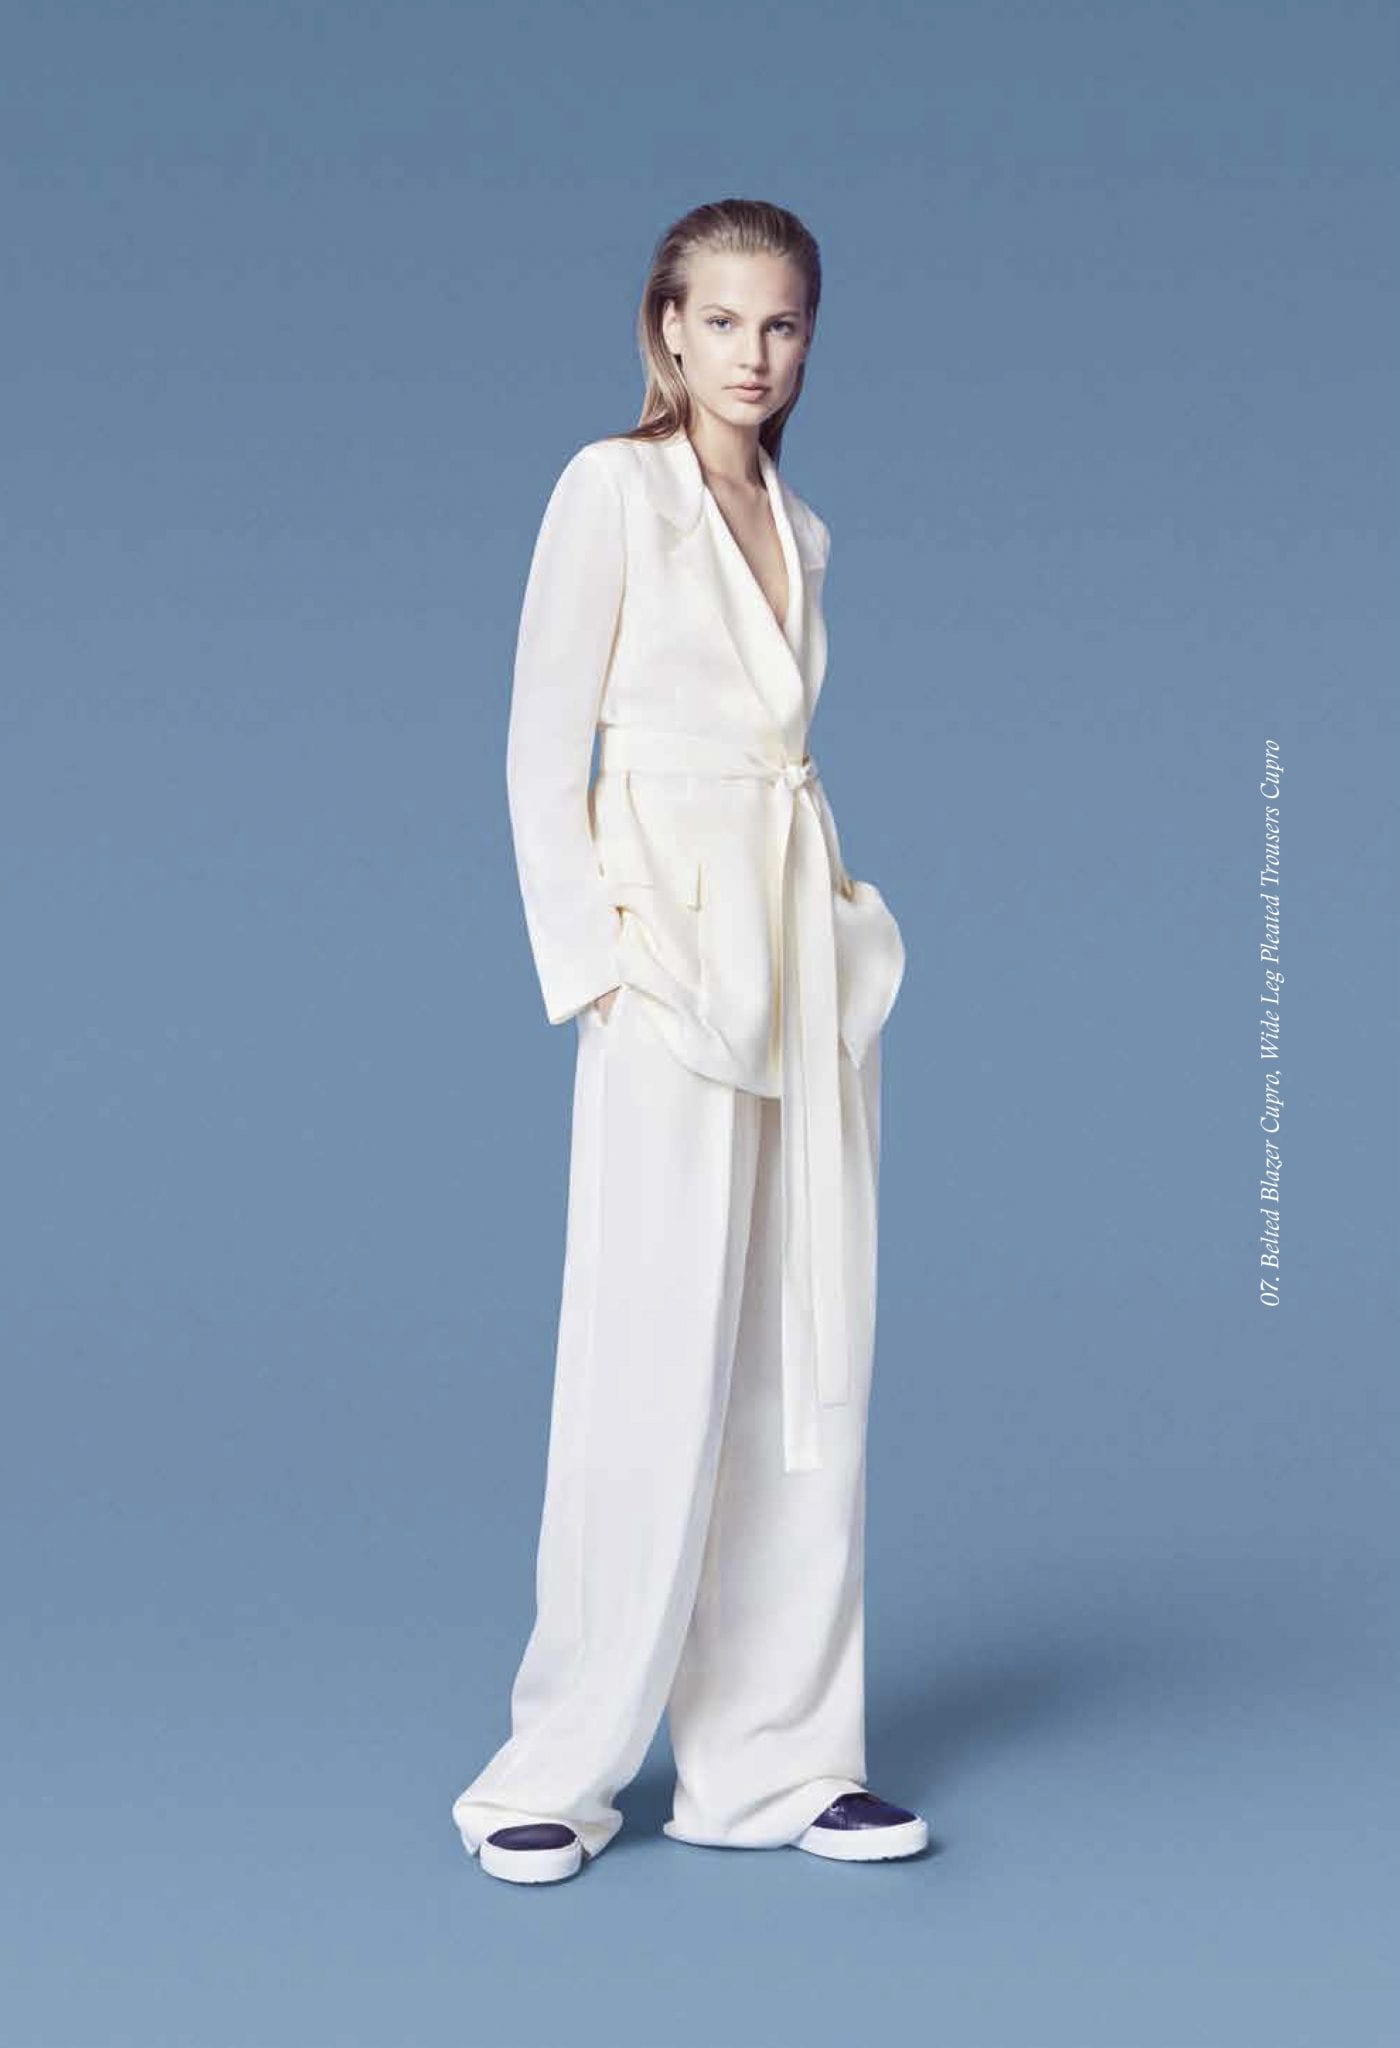 Style&Minimalism | Trends | SS15 | Wearing White | Atea Oceanie Look 8